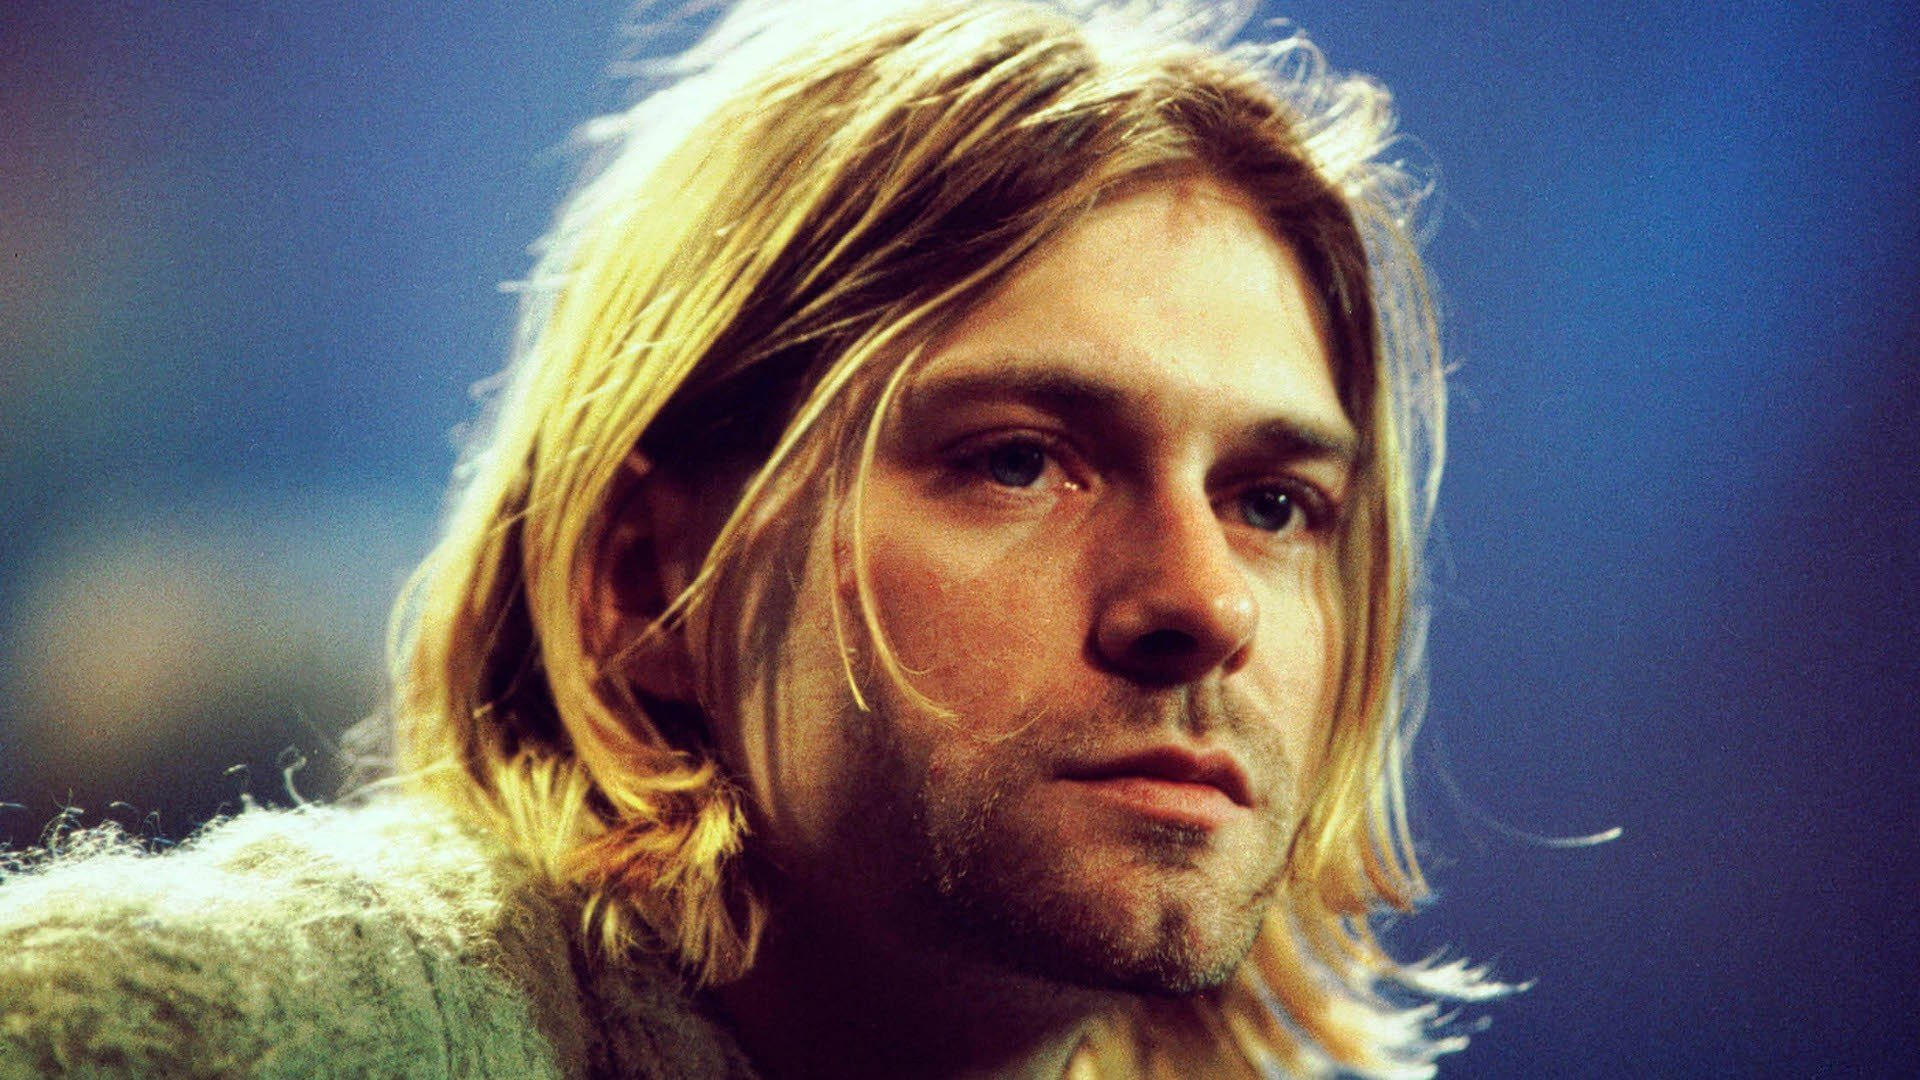 Kurt Cobain Unplugged Wallpaper Nirvana Kurt Cobain Unplug